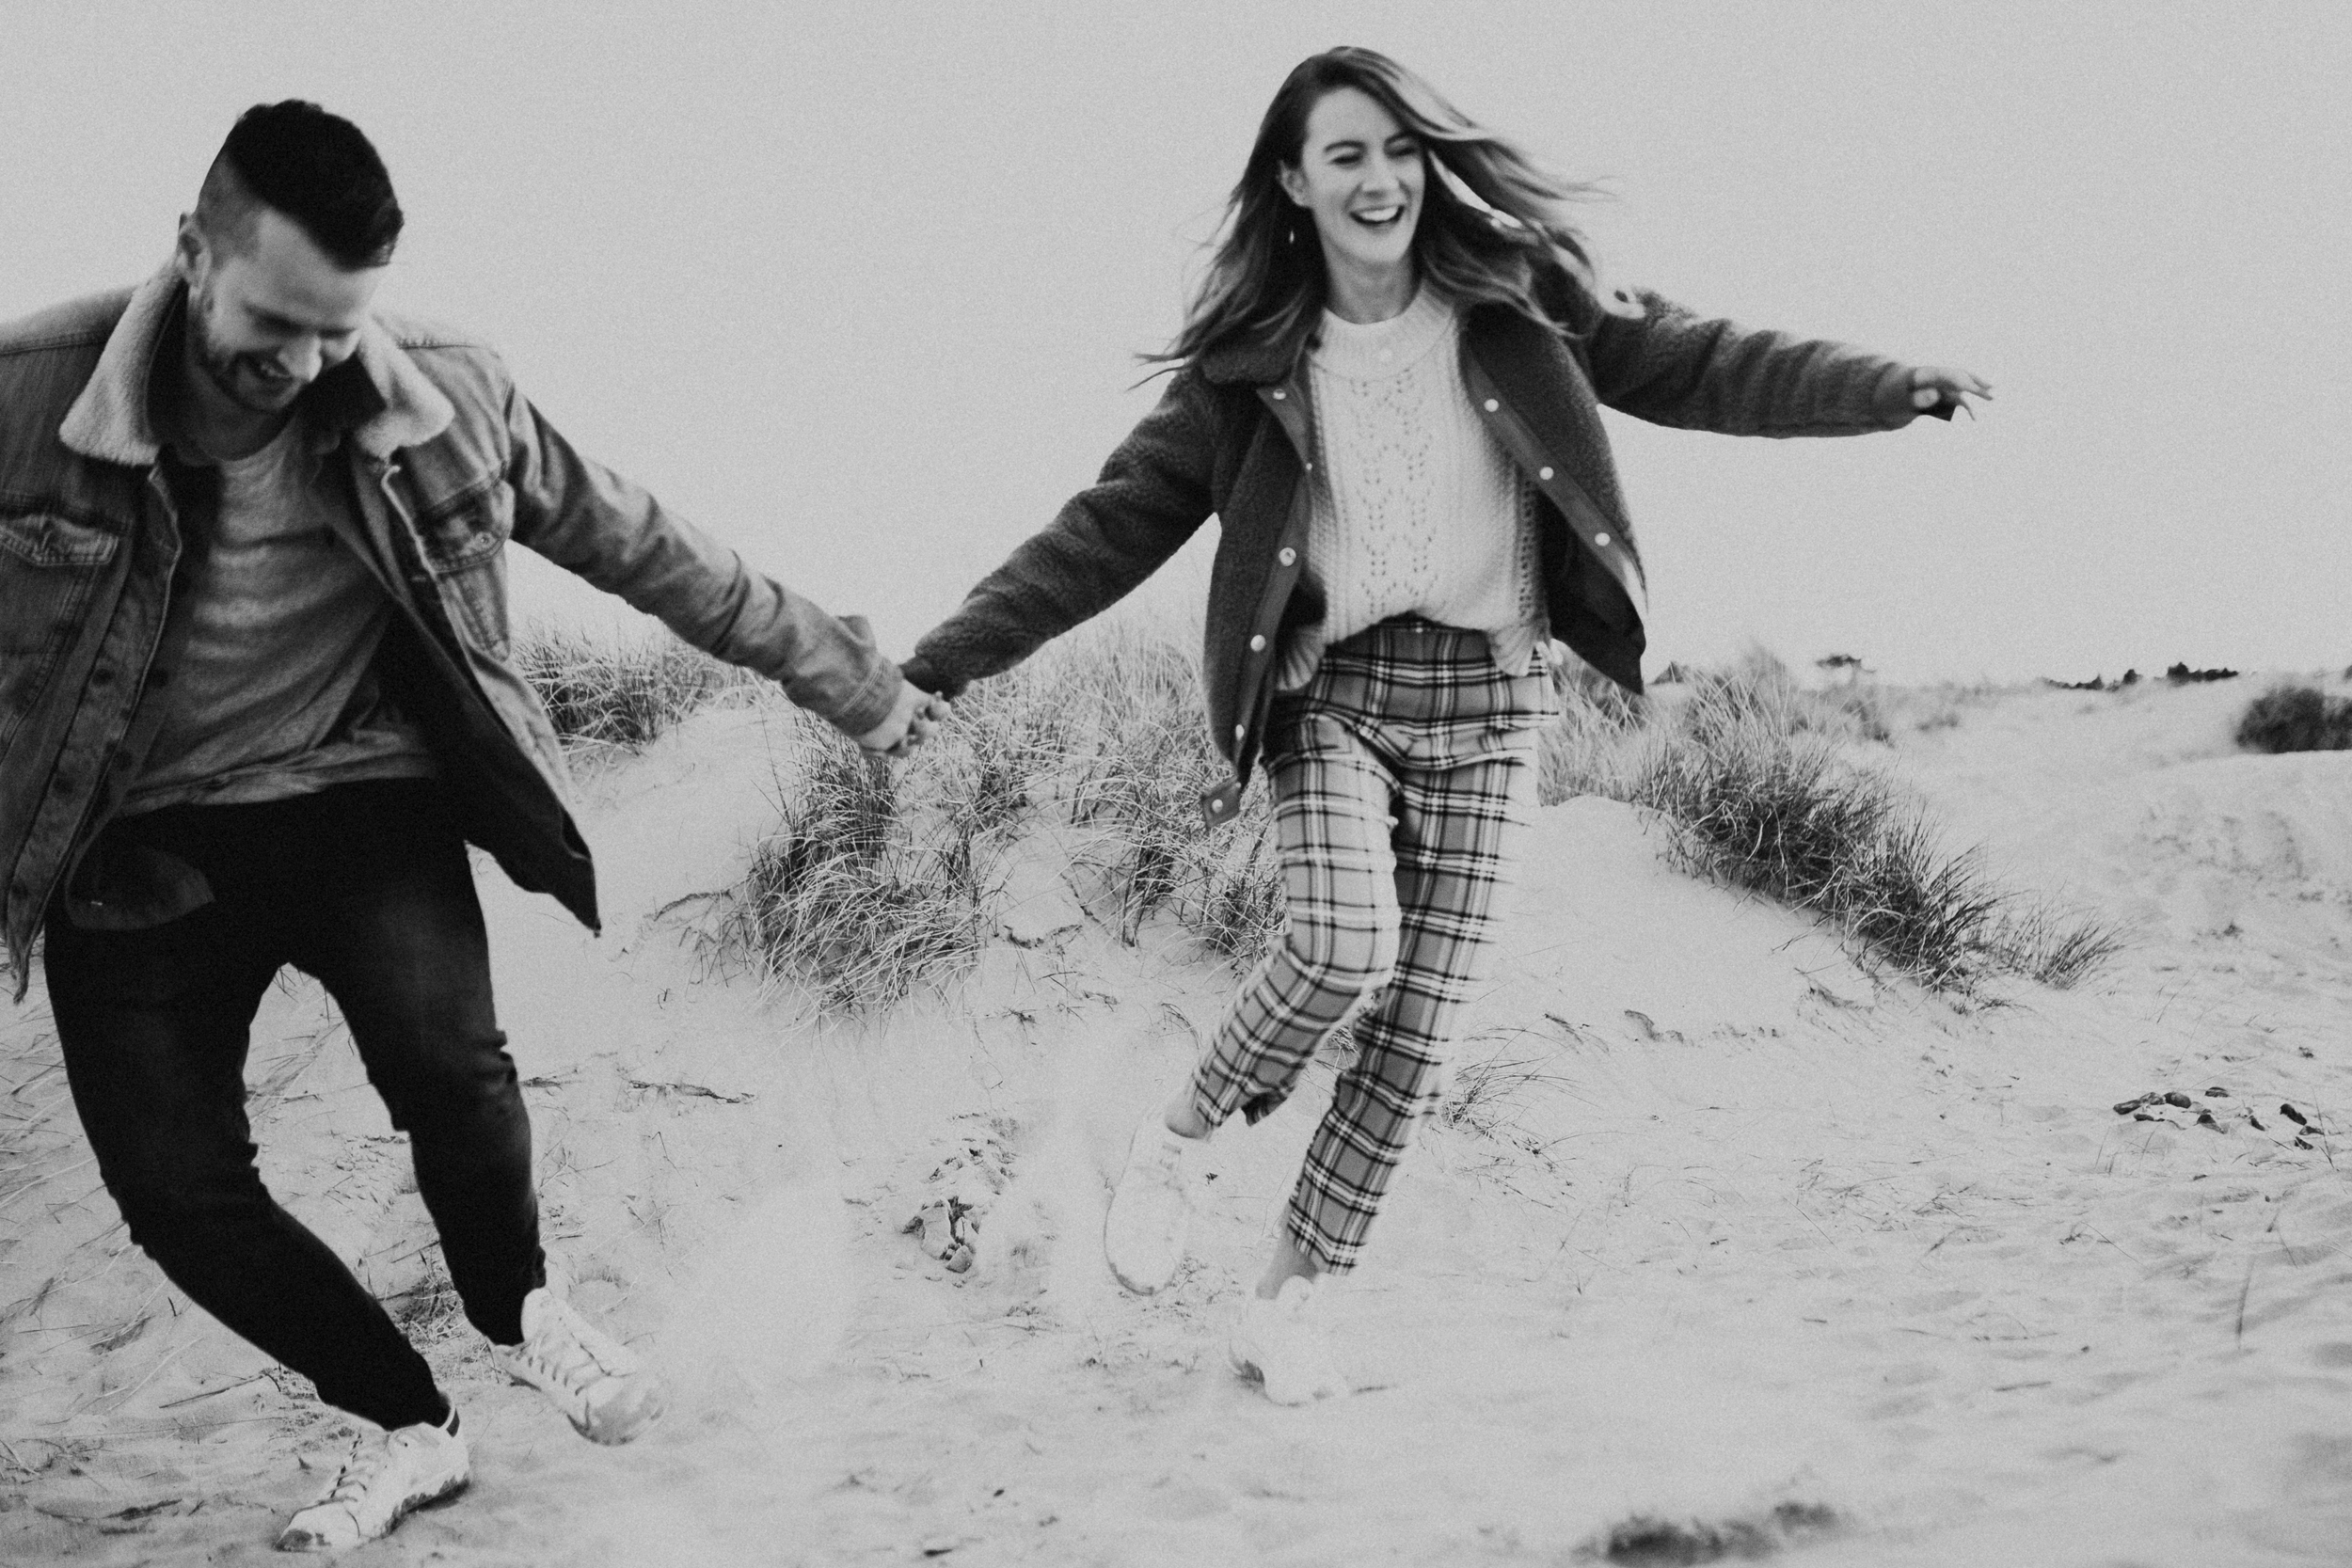 Claire-Liam-Beach-Coastal-Engagement-Session-Norfolk-Darina-Stoda-Photography-3.jpg